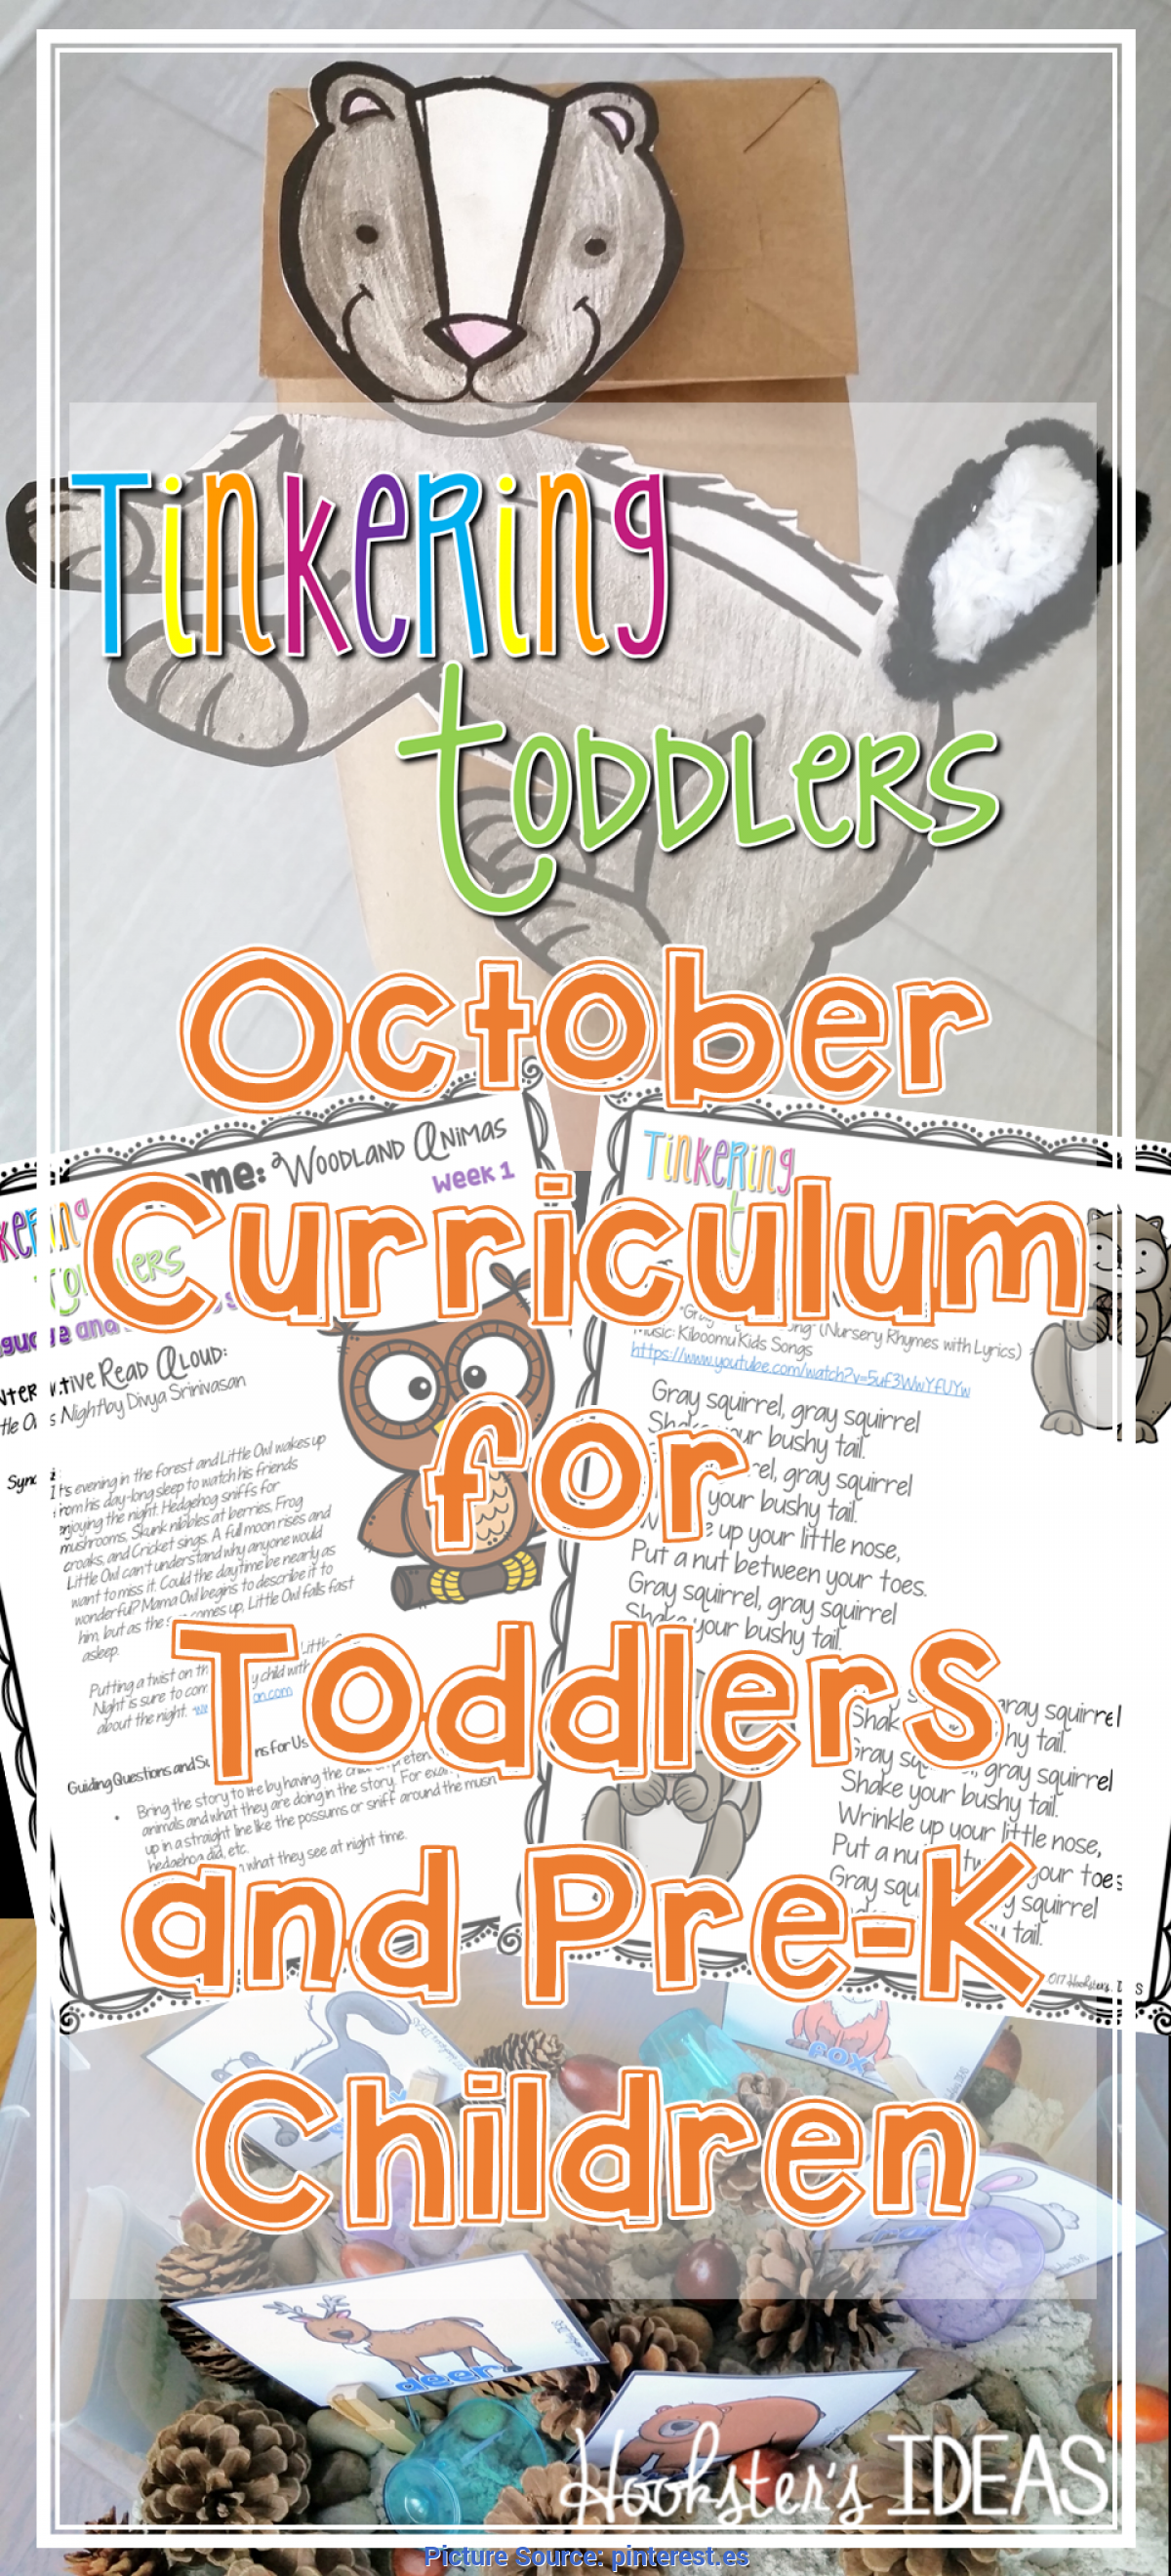 Complex October Themes For Toddlers Tinkering Toddlers October Structured Playgroup Curriculu